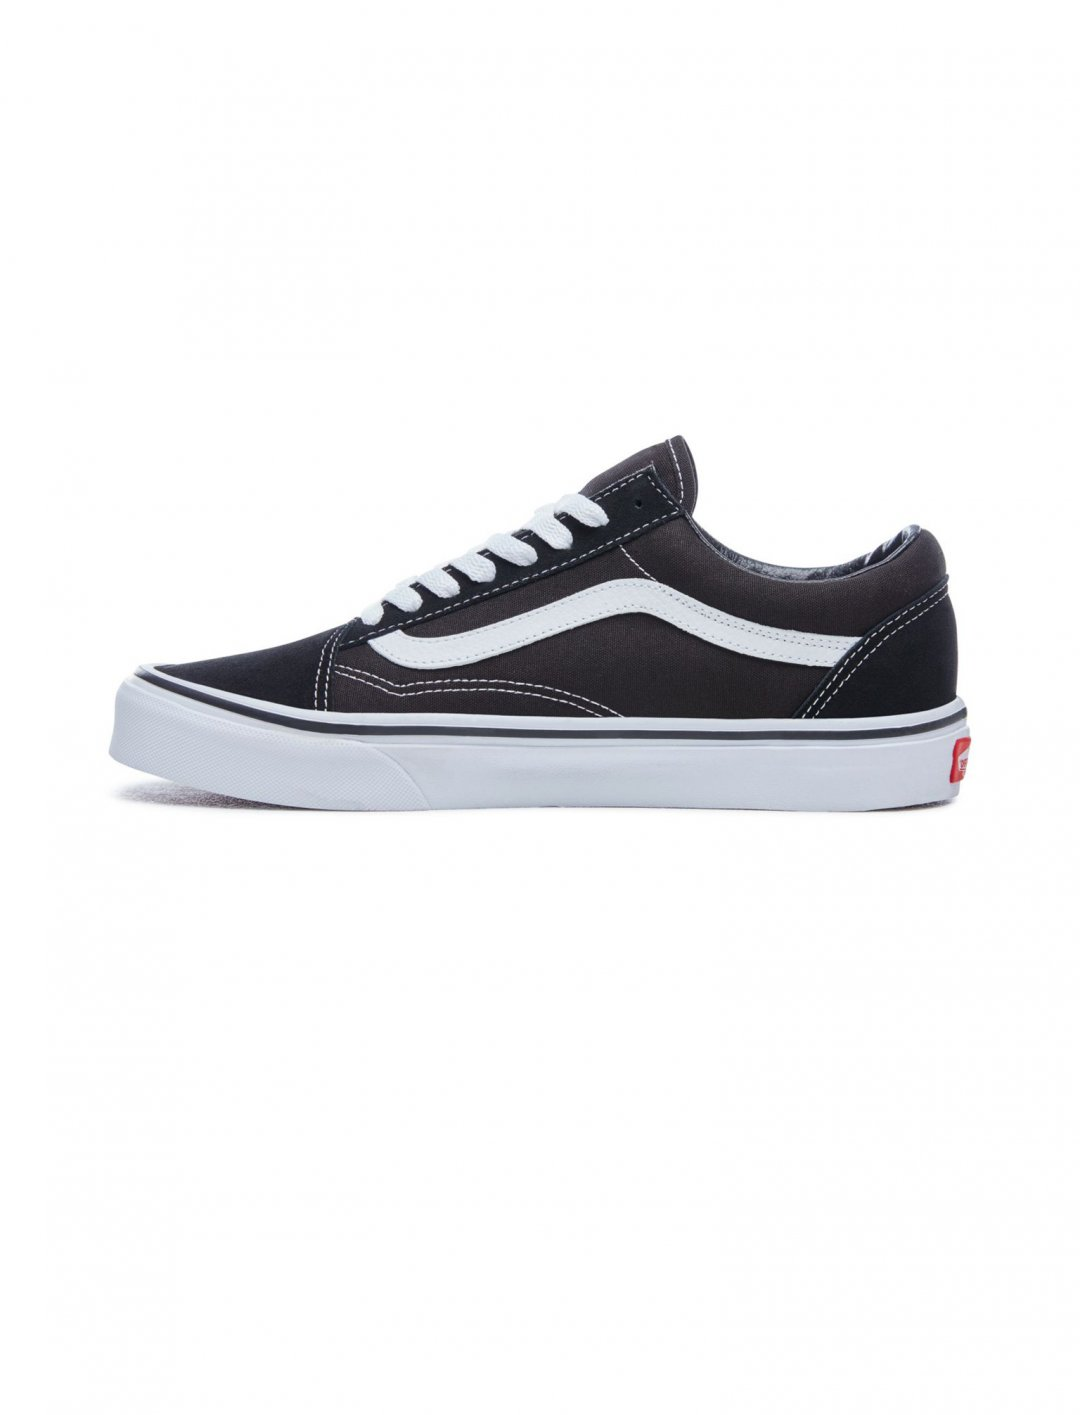 "Anthony Russo's Old Skool Shoes {""id"":12,""product_section_id"":1,""name"":""Shoes"",""order"":12} Vans"